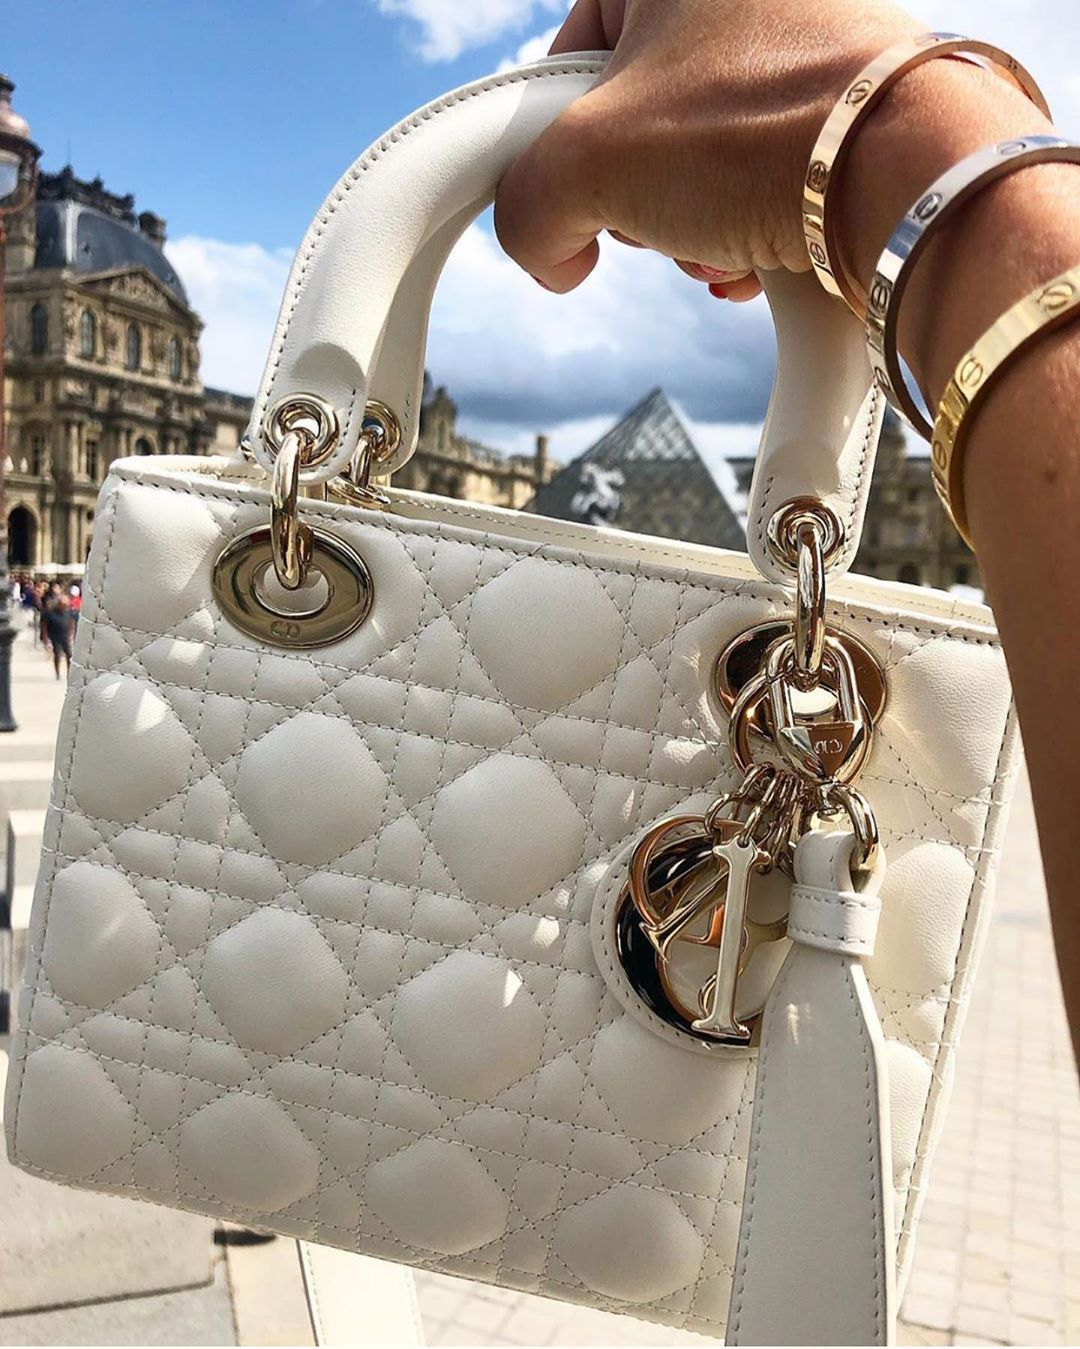 "Photo of Dior No.1 Fan Page on Instagram: ""❤️ @cherrylifestyles  #dior #diorinternational"""